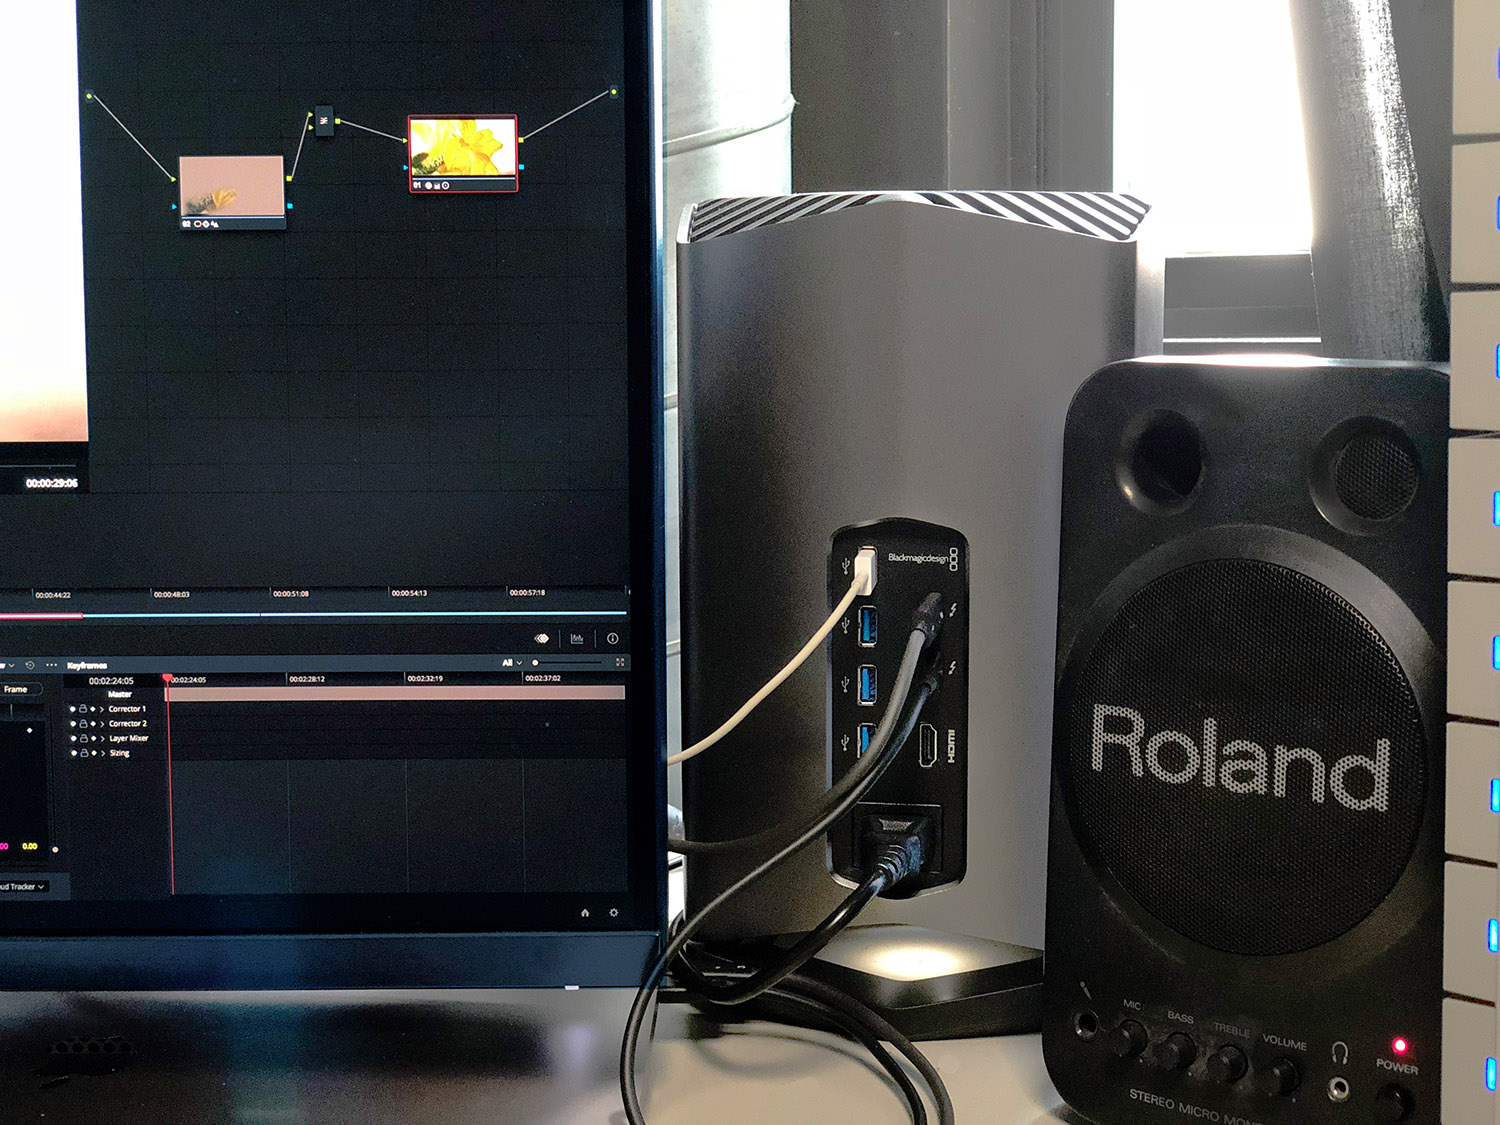 Blackmagic eGPU - What is it really going to do for me? by